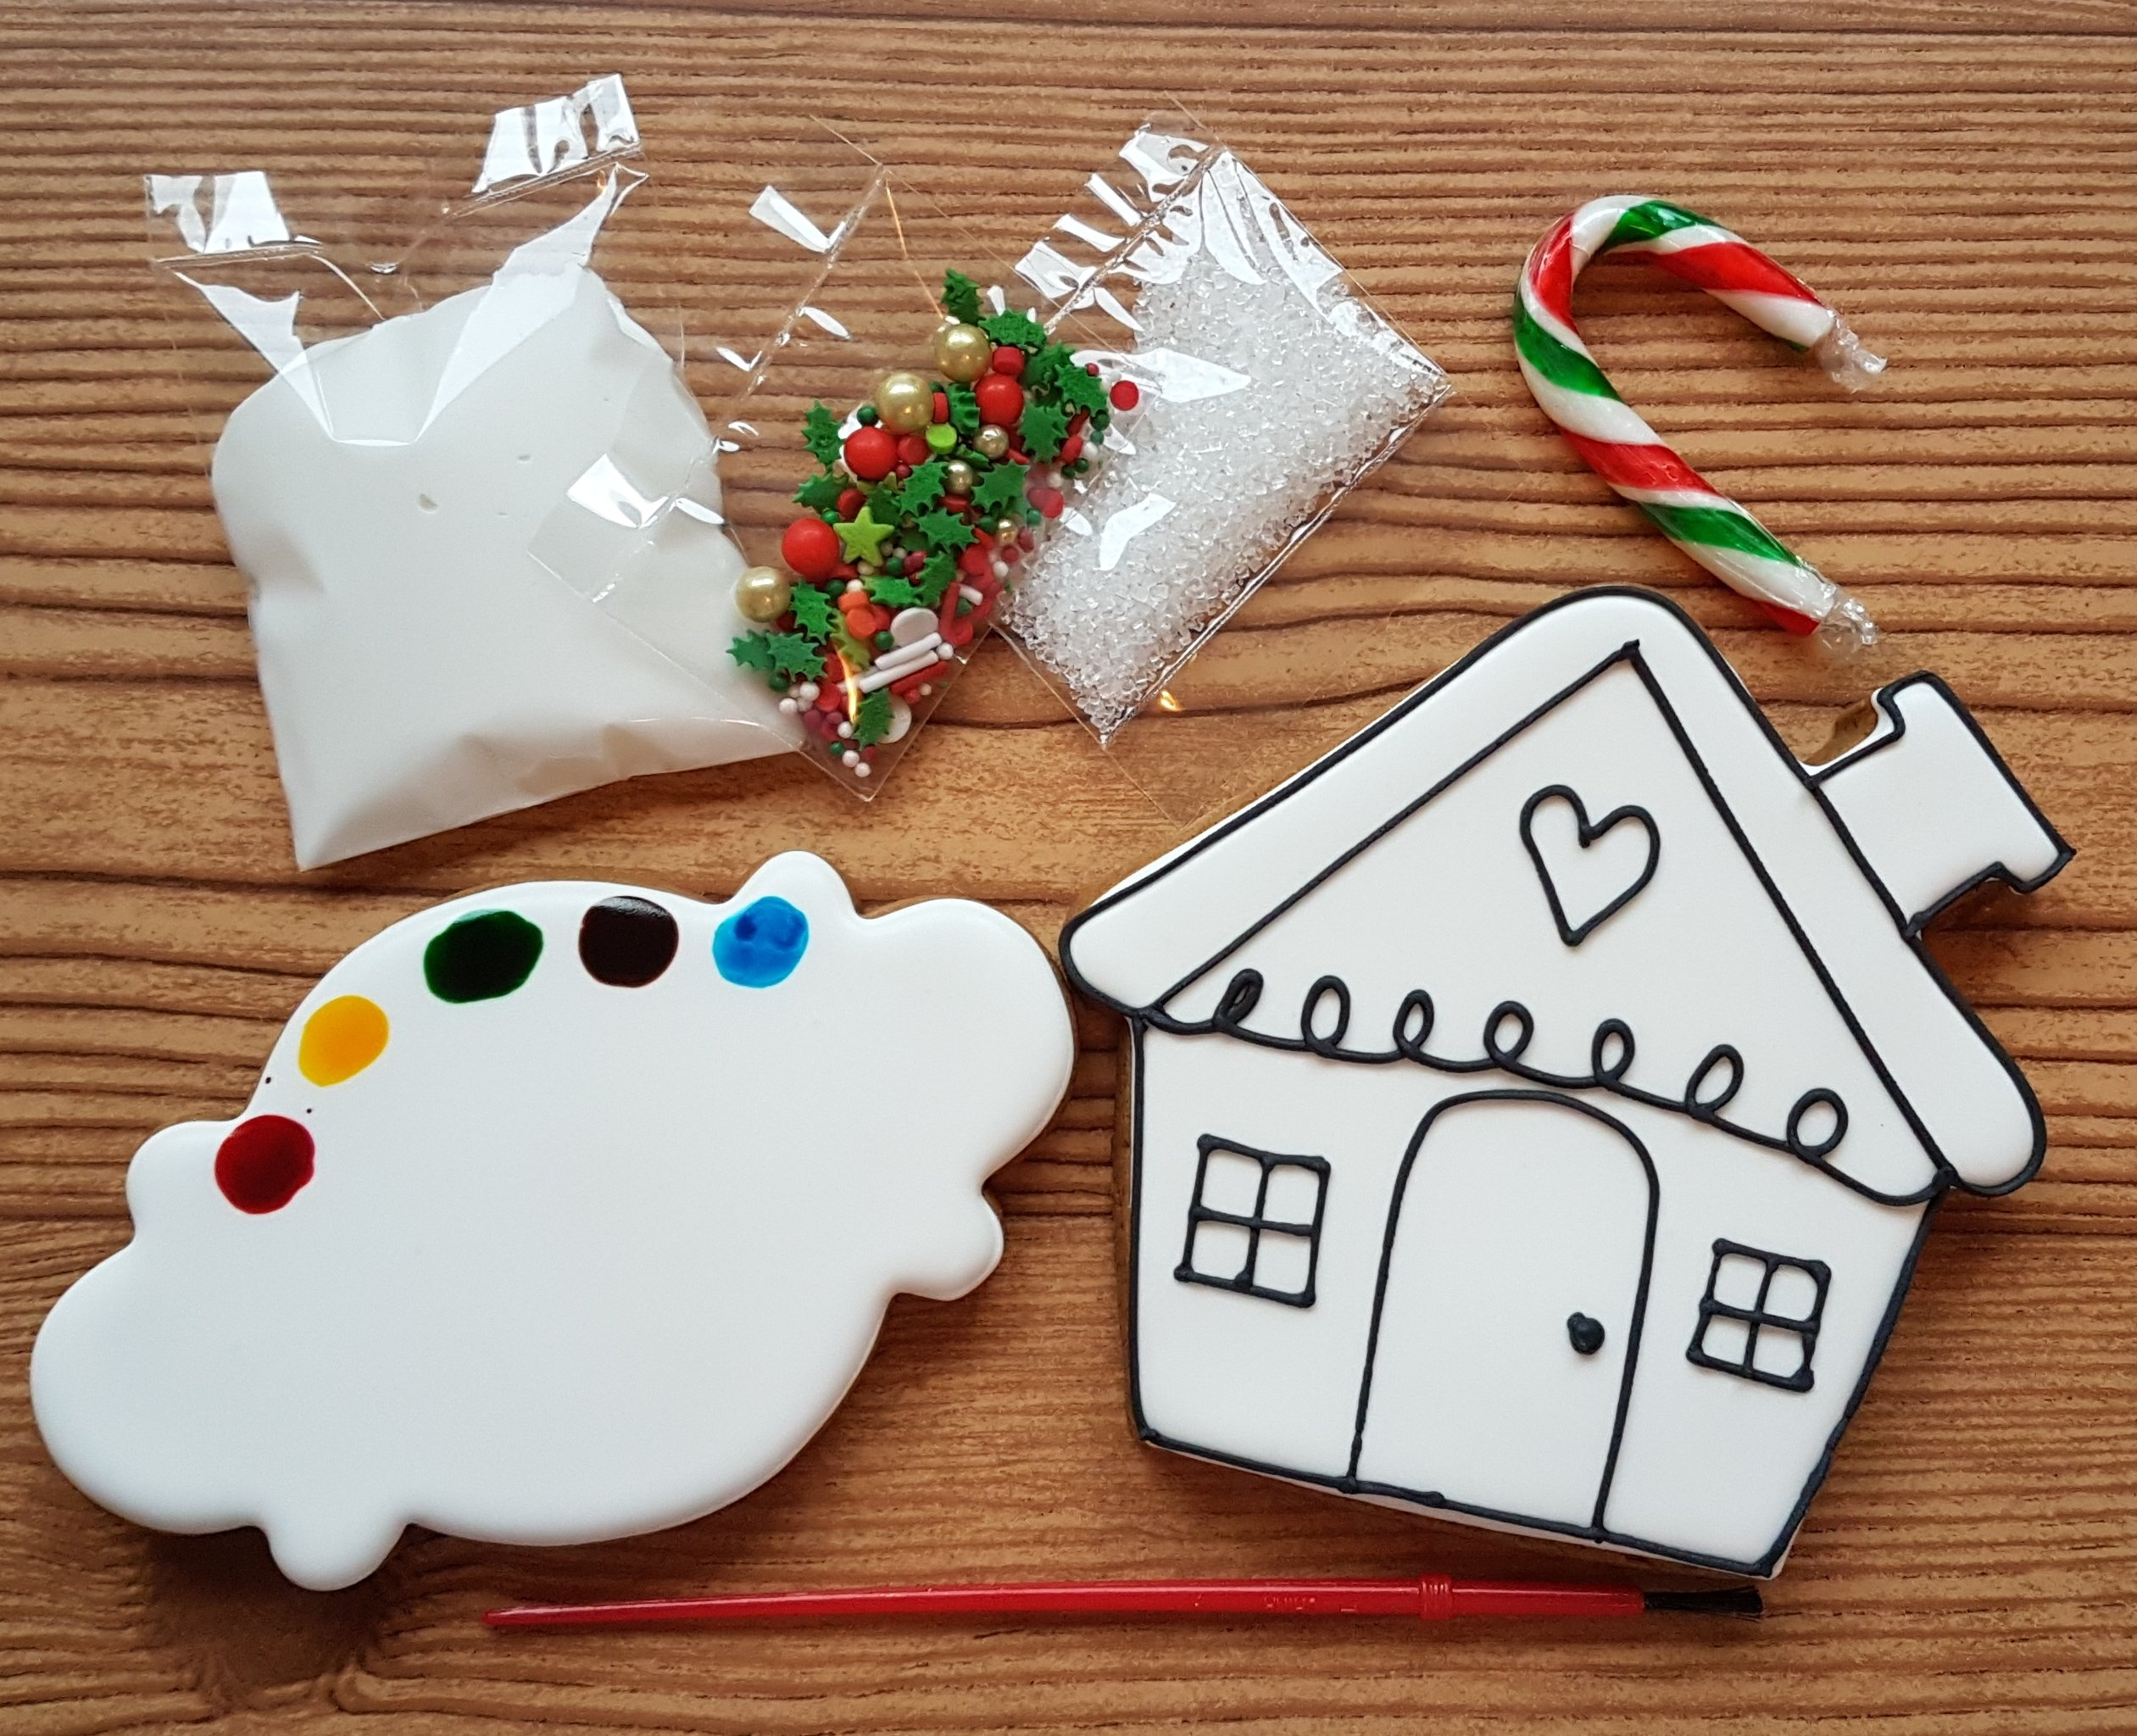 Paint-Your-Own Gingerbread House Kit 00008